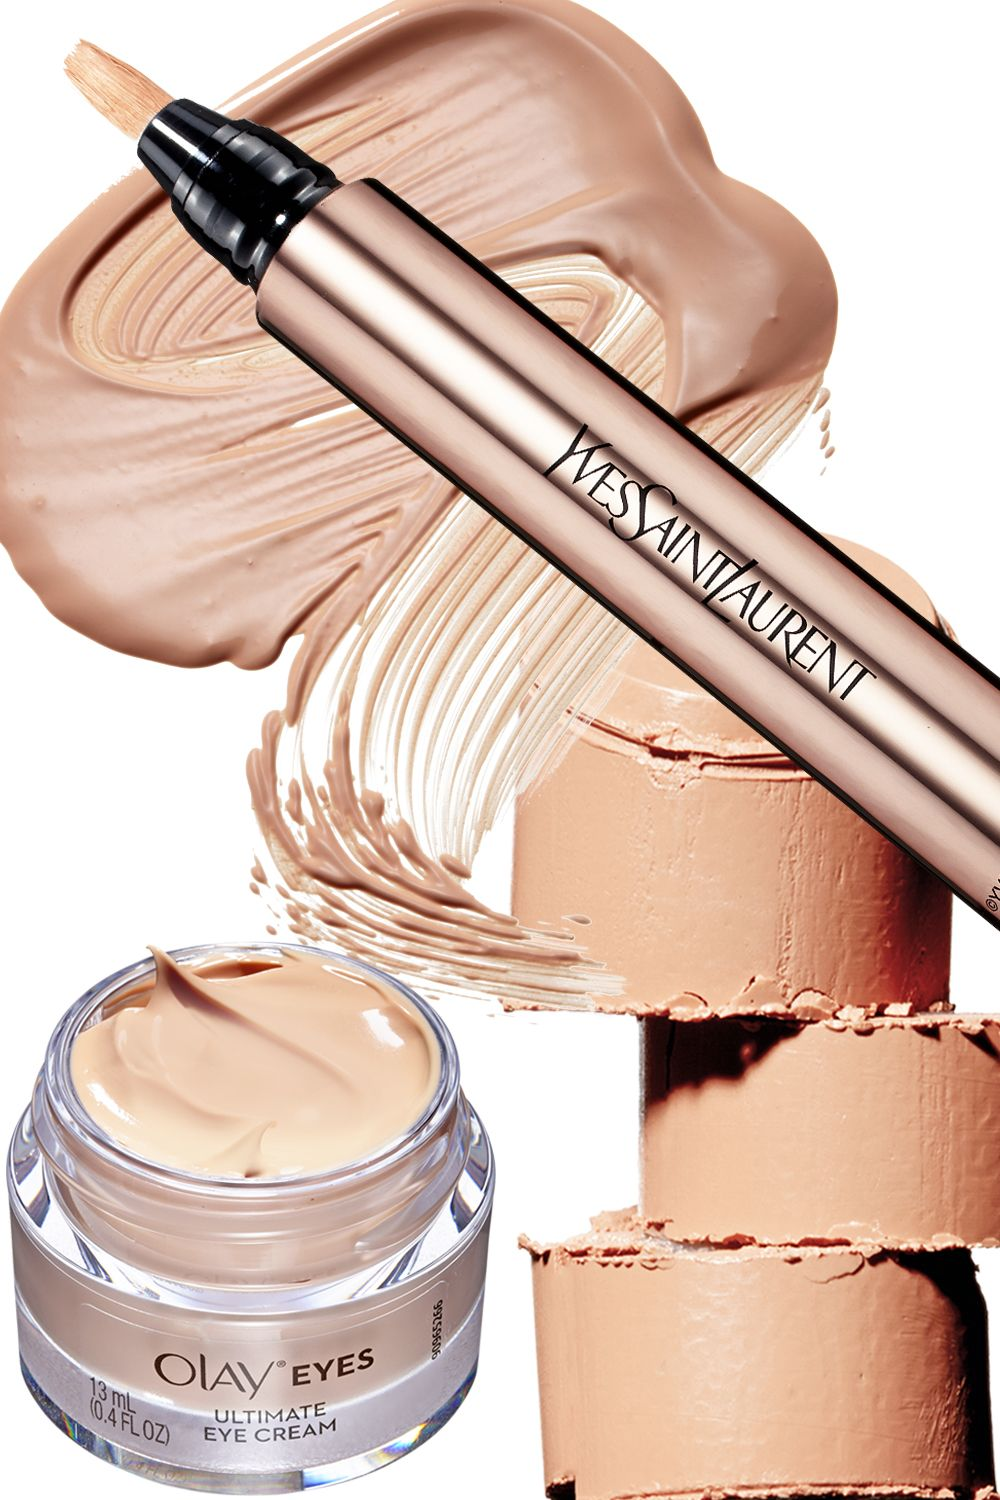 "<p>Peachy color corrector hides even the most egregious dark circles. Swipe it on before applying concealer. Tip: Under-eye darkness is often caused by blood pooling beneath the skin, which becomes thinner and more transparent over time. Fight it with an eye cream that contains niacinamide; it helps densify your skin's barrier.</p><p><em data-redactor-tag=""em"" data-verified=""redactor""><br></em></p><p><em data-redactor-tag=""em"" data-verified=""redactor"">From top, clockwise: <strong data-redactor-tag=""strong"" data-verified=""redactor"">Yves Saint Laurent</strong> Touche Éclat Neutralizers in Abricot Bisque, $38, <a href=""http://www.yslbeautyus.com/touche-%C3%A9clat/141YSL.html?dwvar_141YSL_color=1%20Luminous%20Radiance&gclid=CjwKEAjw97K_BRCwmNTK26iM-hMSJABrkNtb6COkY2px-VtfCWHkBEisoXqfion7ezsjjjU_XdzNjhoCvN3w_wcB&cm_mmc=cpc-_-googleSearchBrand-_-YSL%20Make%20Up%20-%20Ph_Product%20-%20Touche%20Eclat2-_-kw%3A%20yves%20st%20laurent%20touche%20eclat"" target=""_blank"">yslbeautyus.com</a>; <strong data-redactor-tag=""strong"" data-verified=""redactor"">Dior</strong> Fix It 2-in-1 Prime and Colour Correct in Apricot # 003<span>, $36, <a href=""http://www.dior.com/beauty/en_us/fragrance-beauty/makeup/face/primers/pr-primers-y0929603-2-in-1-prime-colour-correct-face-eyes-lips.html?gclid=CjwKEAjw97K_BRCwmNTK26iM-hMSJABrkNtbGYO4Jfy4lwzjpU9T6NmLG-GlG1ipLgo4j3yZJtsWgRoClPvw_wcB"" target=""_blank"">dior.com</a>; </span><strong data-redactor-tag=""strong"" data-verified=""redactor"">Olay</strong> Eyes Ultimate Eye Cream</em><span><em data-redactor-tag=""em"" data-verified=""redactor"">, $25, <a href=""http://www.olay.com/en-us/skin-care-products/olay-total-effects-anti-aging-eye-treatment?&utm_source=google&utm_medium=cpc&utm_campaign=Olay_Search_Brand+Awareness.BMM&utm_term=%2Bolay%20%2Beyecream&utm_content=sT7GihkvW